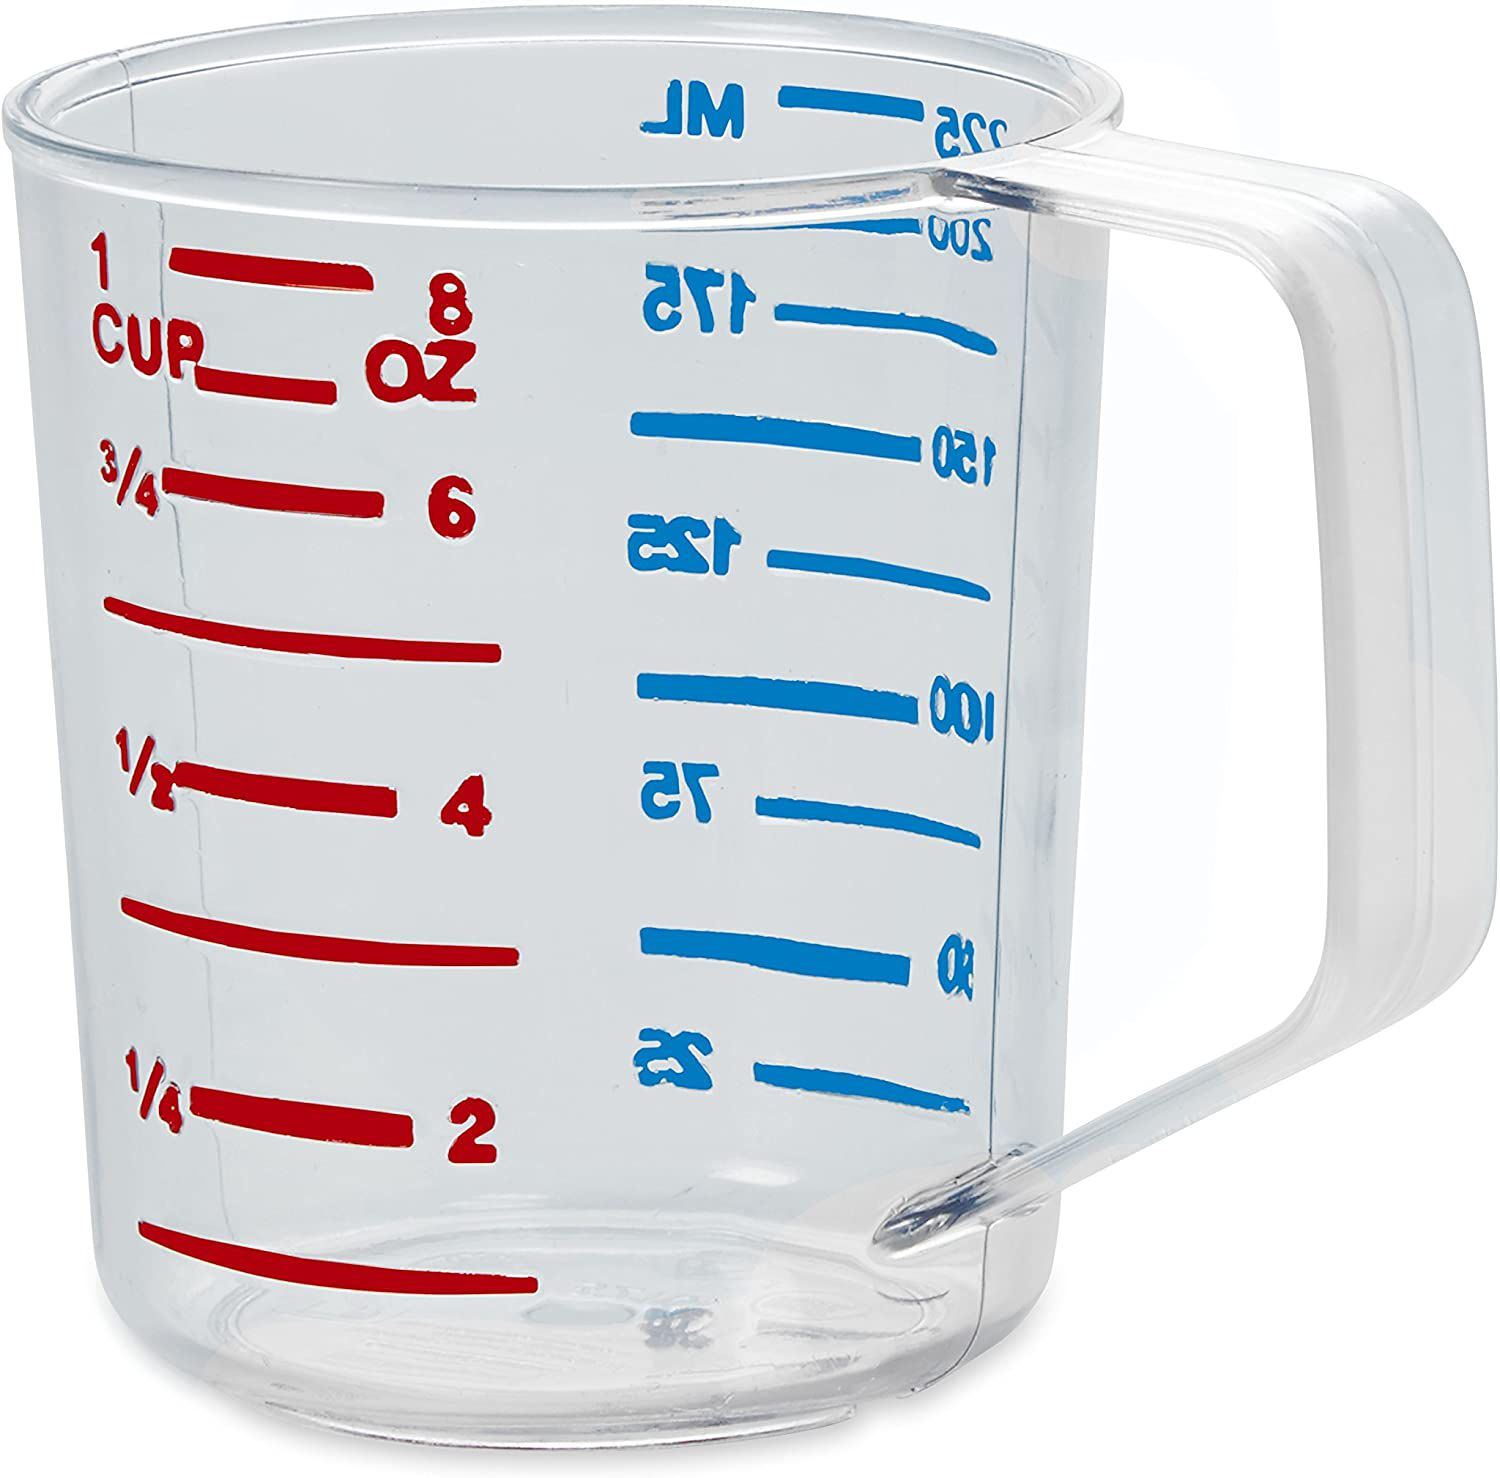 Rubbermaid Commercial Products 1 Cup Bouncer Measuring Cup